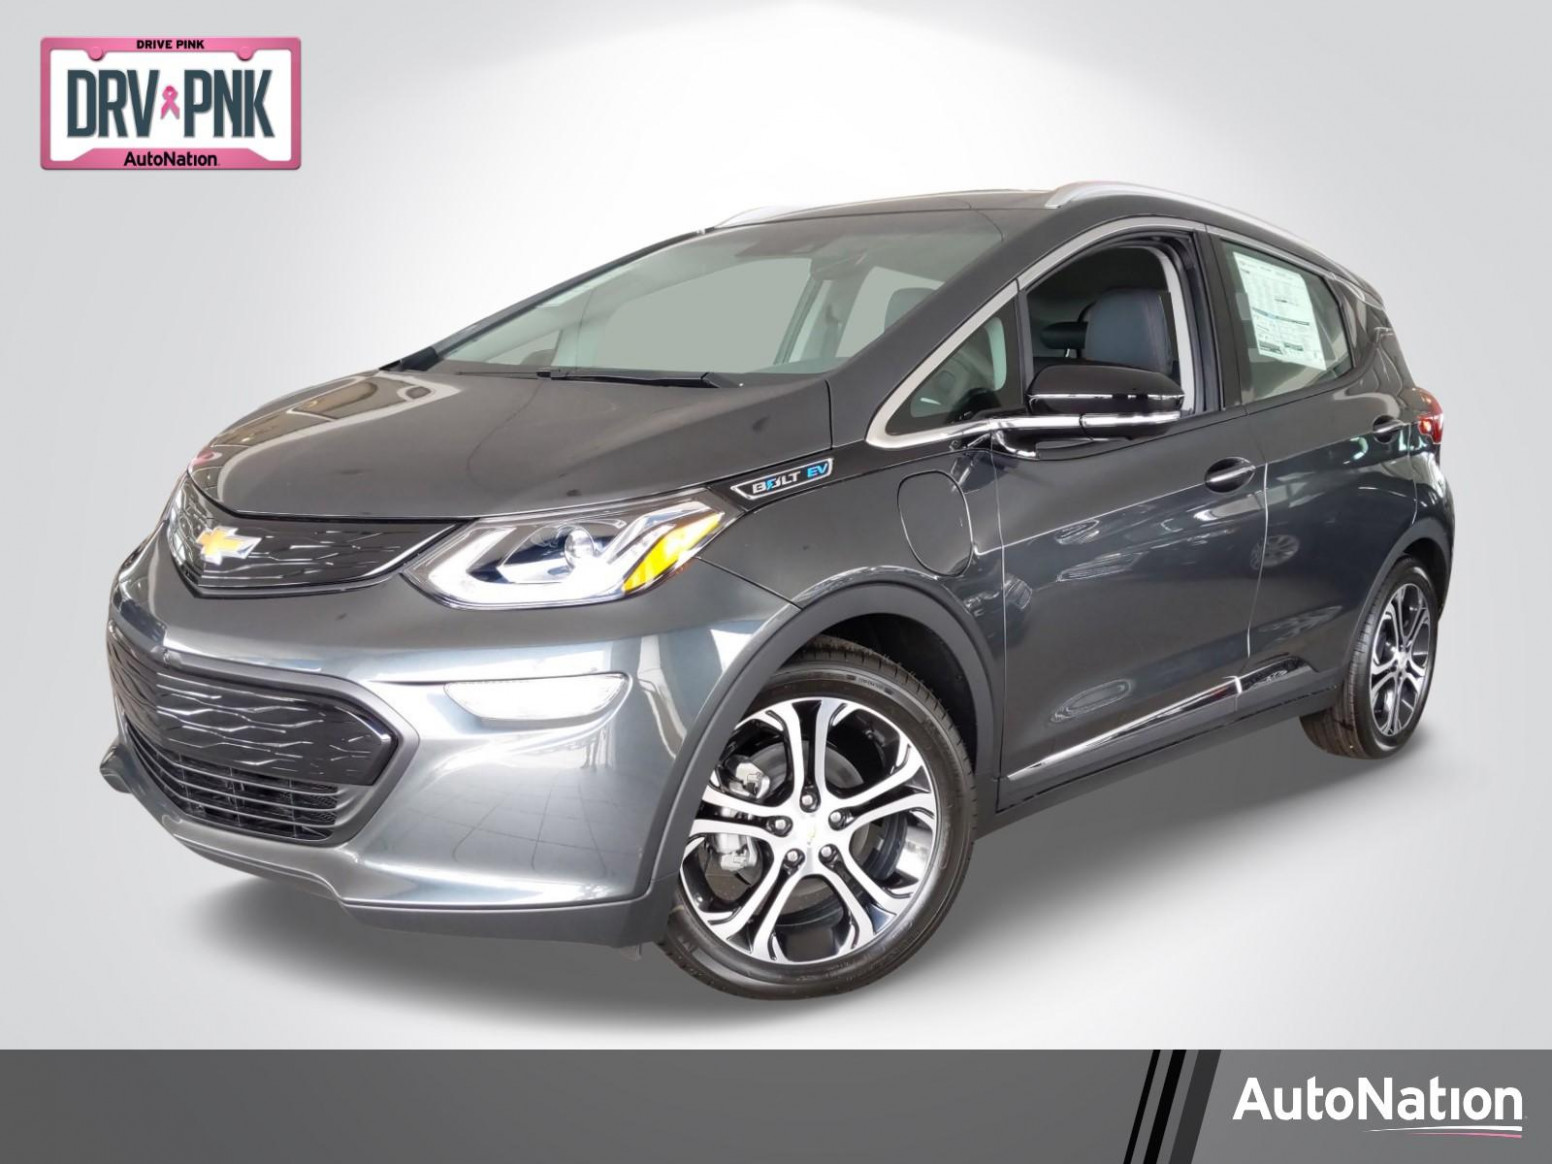 New 9 Chevrolet Bolt EV 9dr Wgn Premier - 2020 chevrolet volt premier for sale